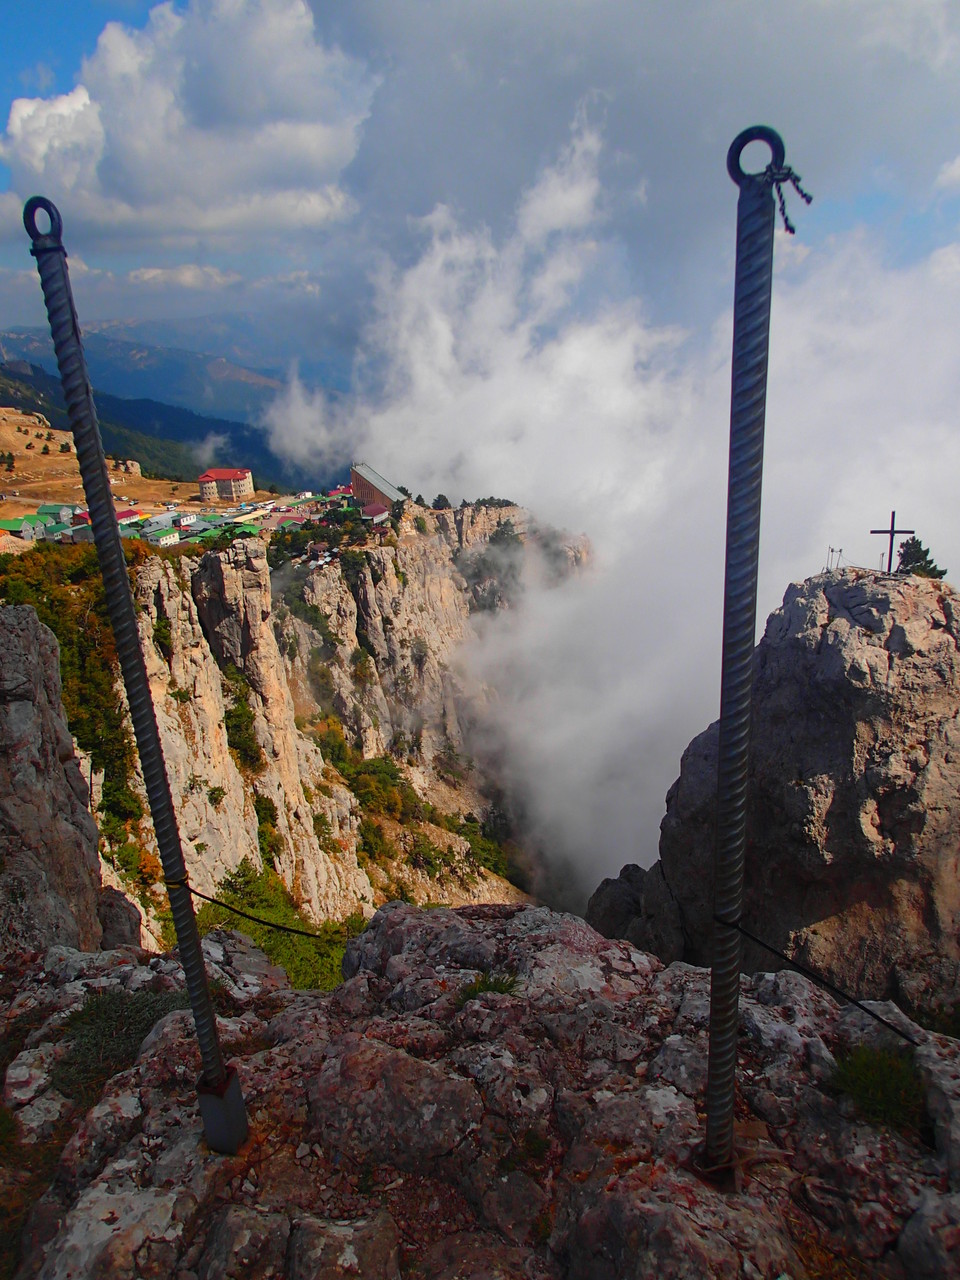 Not long ago, a hanging bridge connected the mountain with the peak